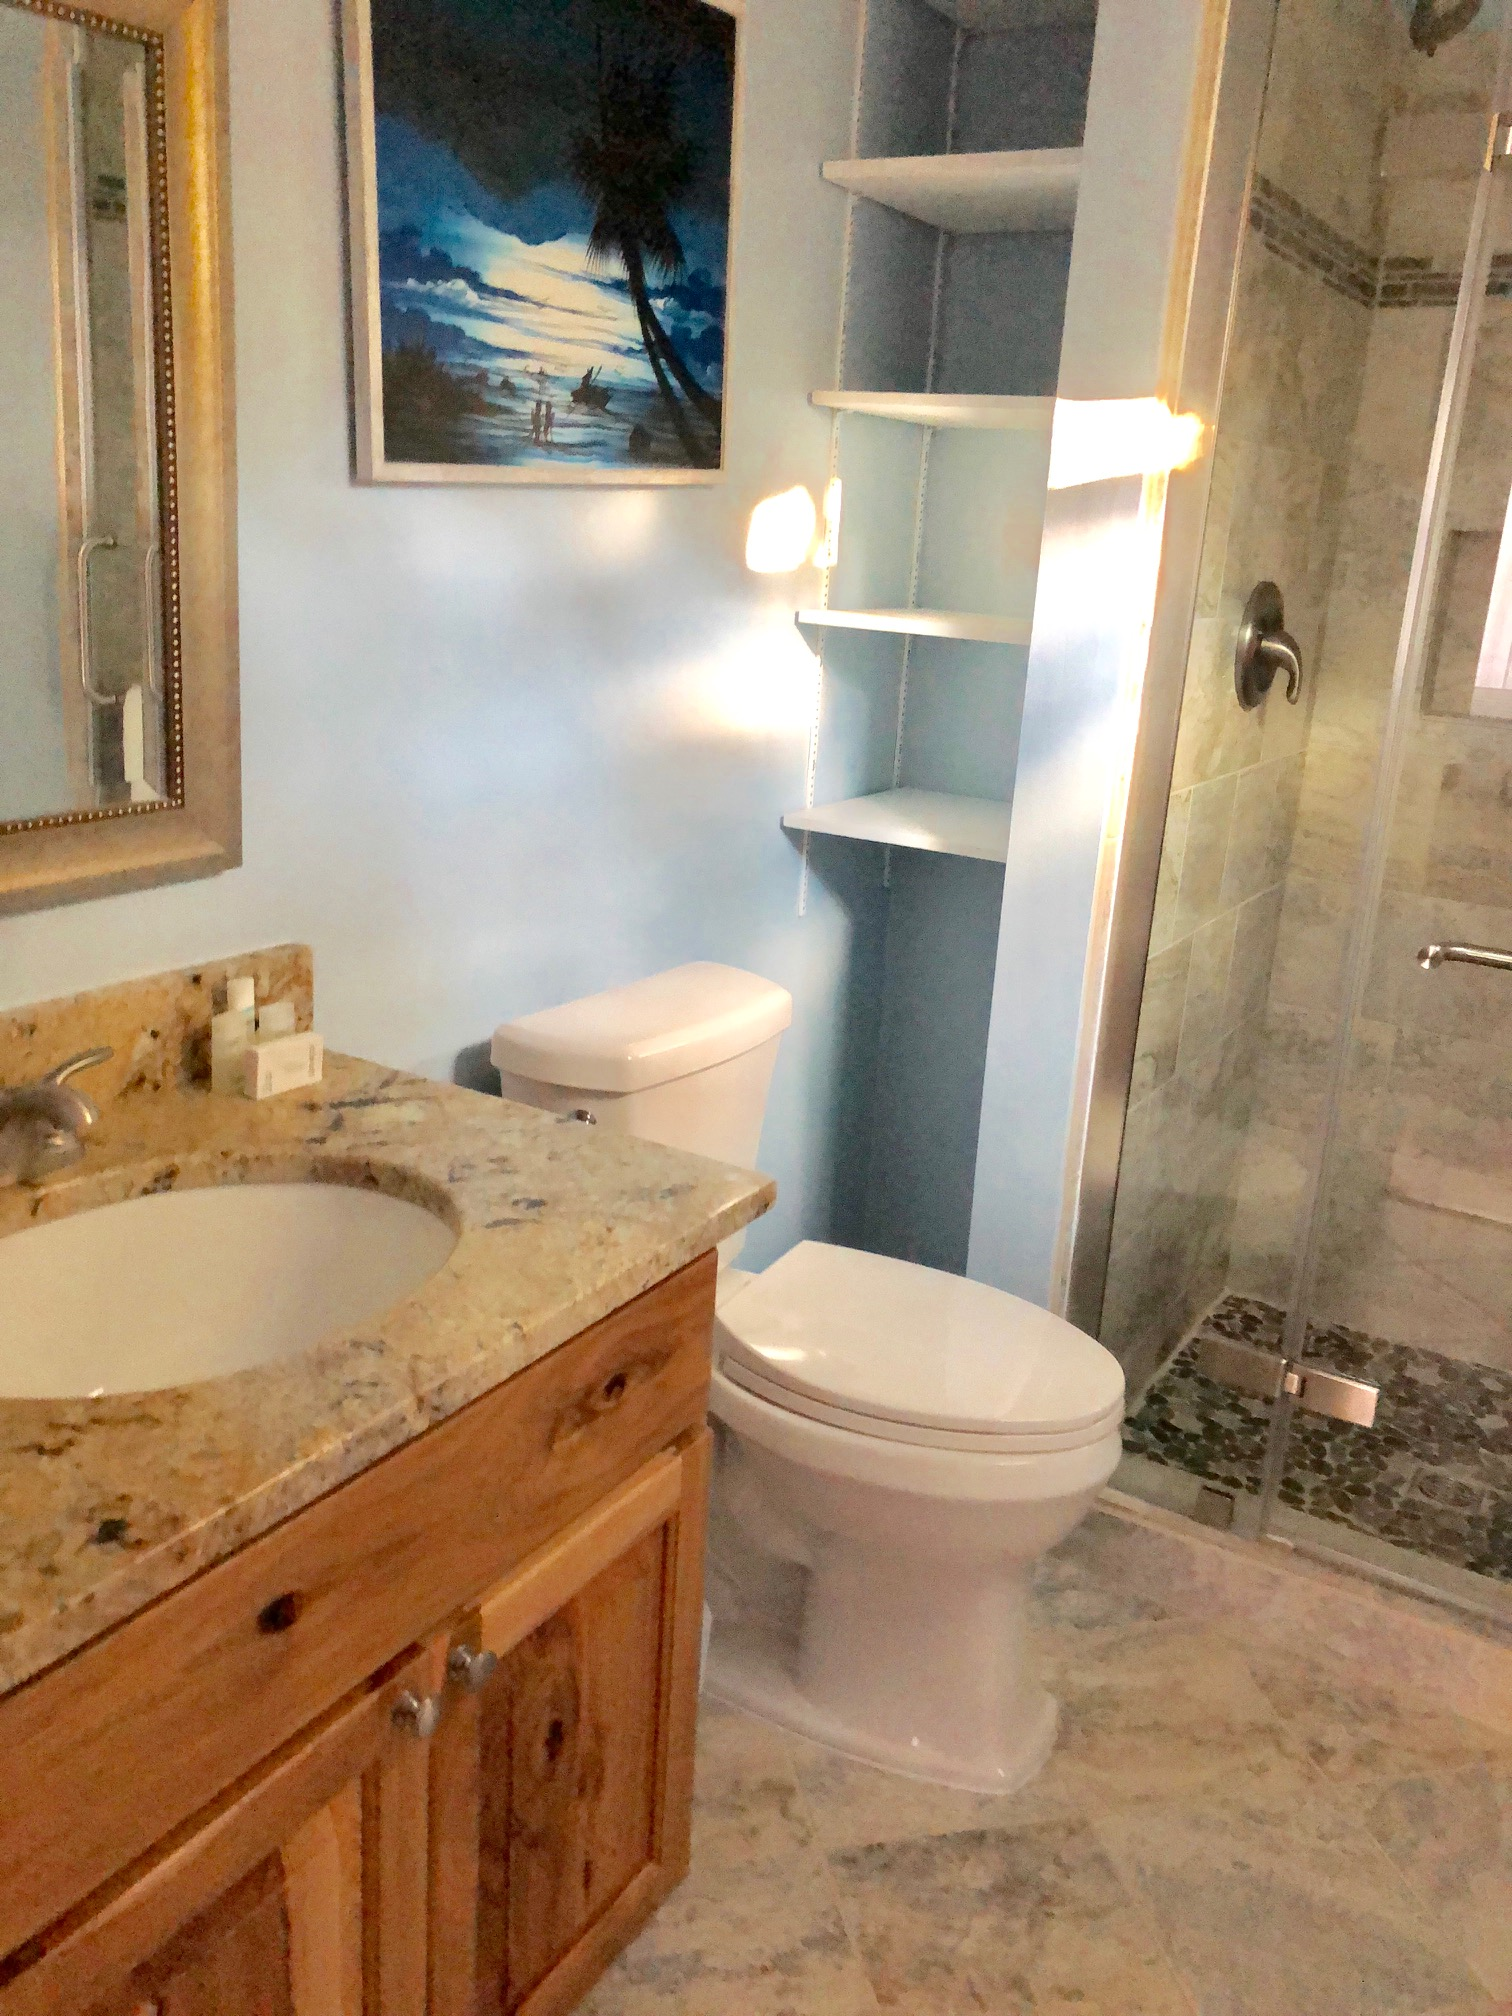 Newly renovated master bathroom with tile flooring and shower.